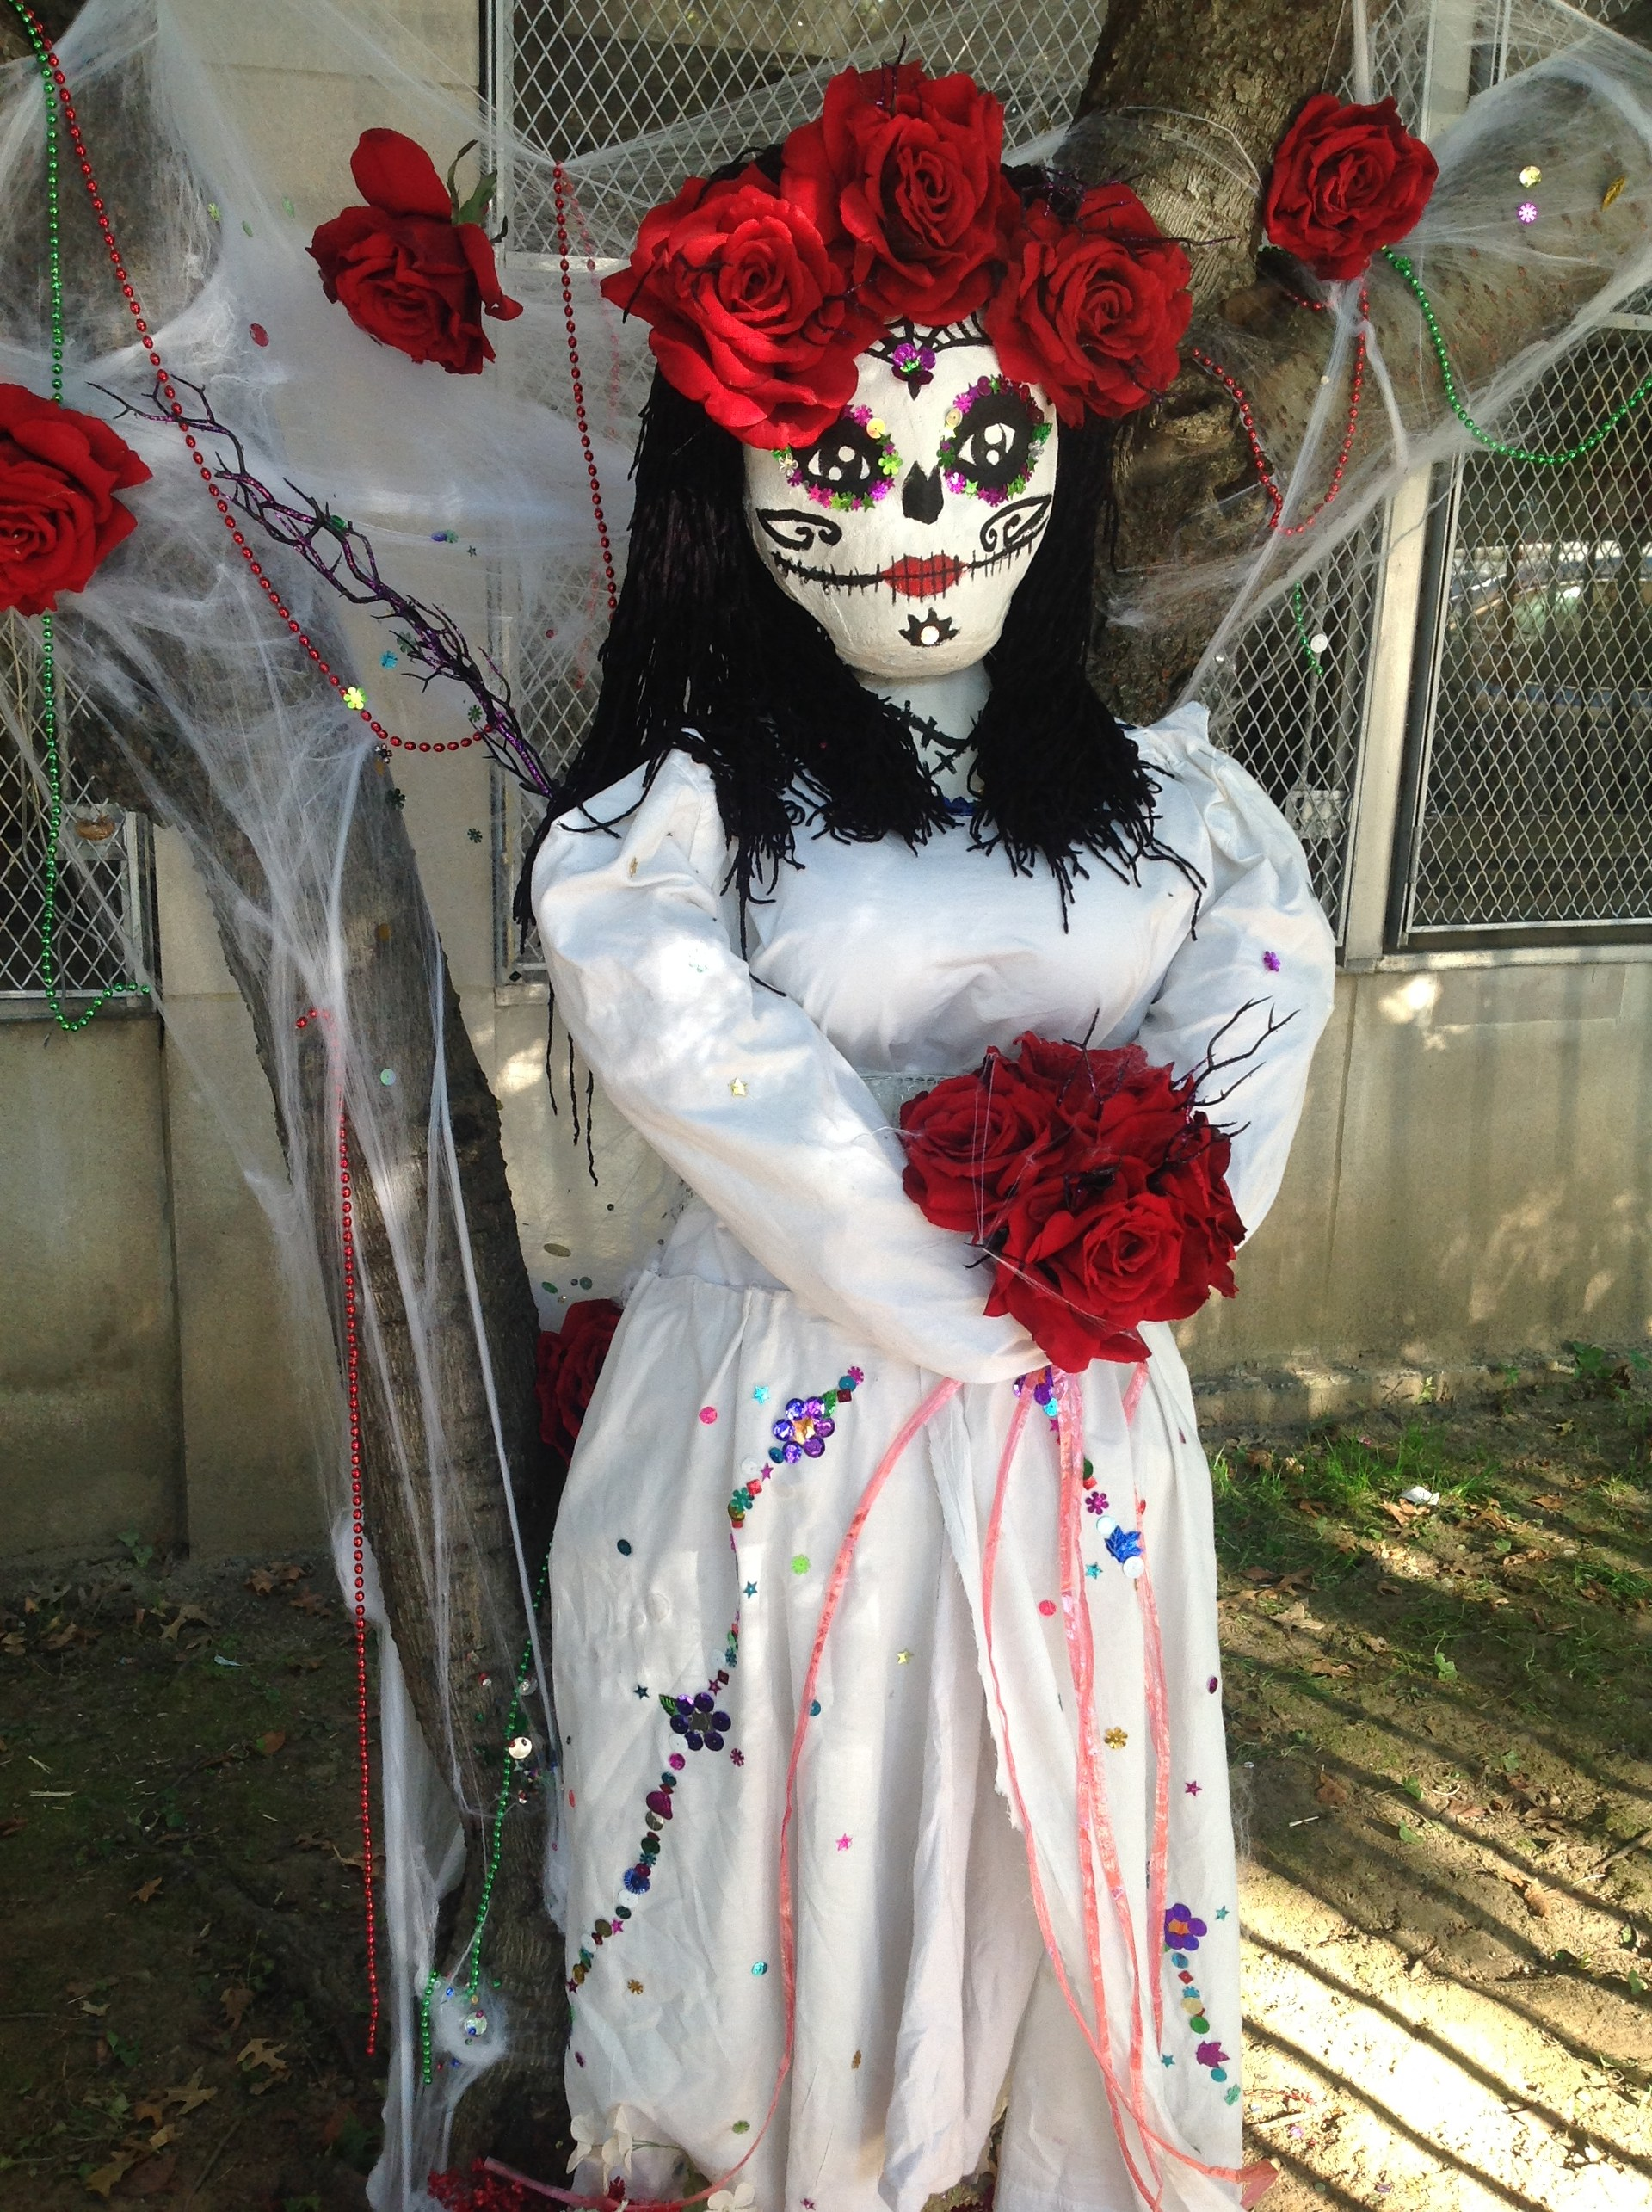 Day of the dead woman scarecrow holding roses.